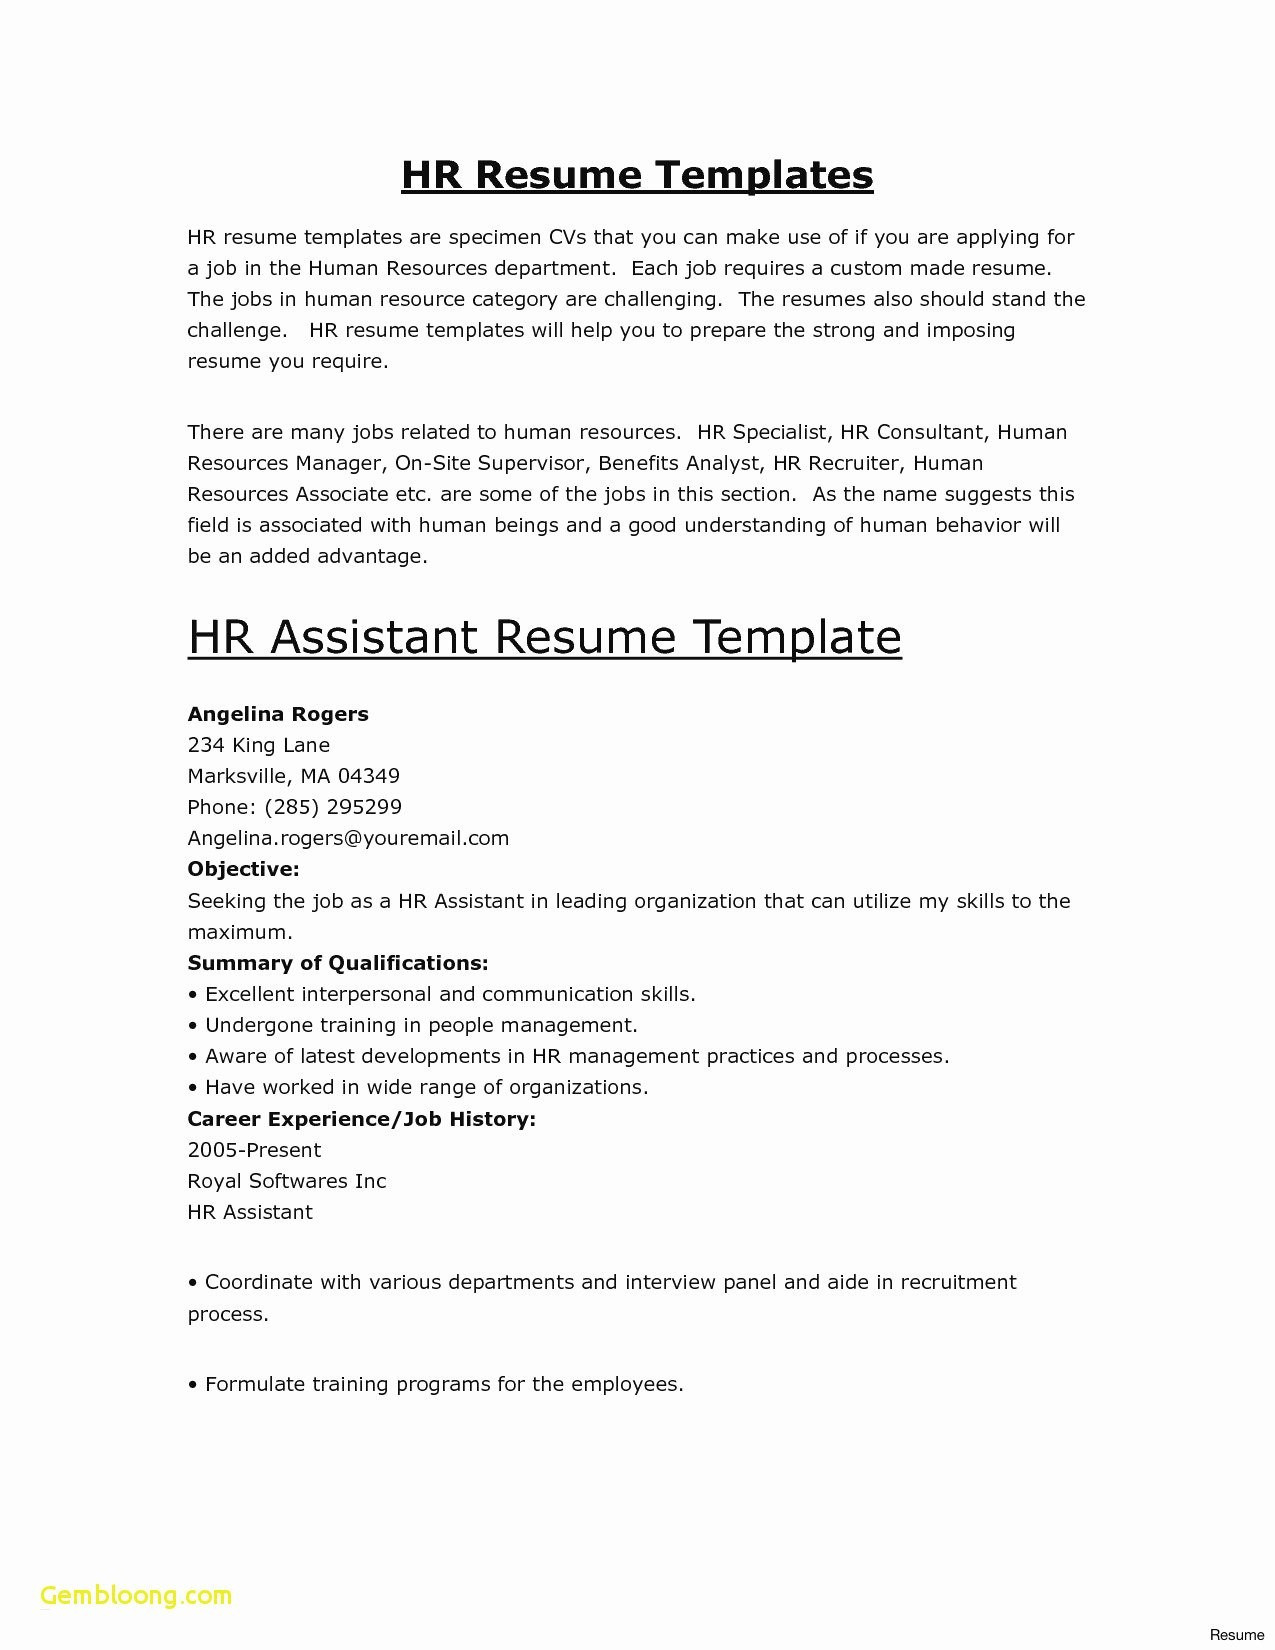 resume template for supervisor position Collection-Graphic Design Job Description Resume Fresh Best Resumes Ever Awesome Resume Examples Pdf Best Resume Pdf 0d 18-g